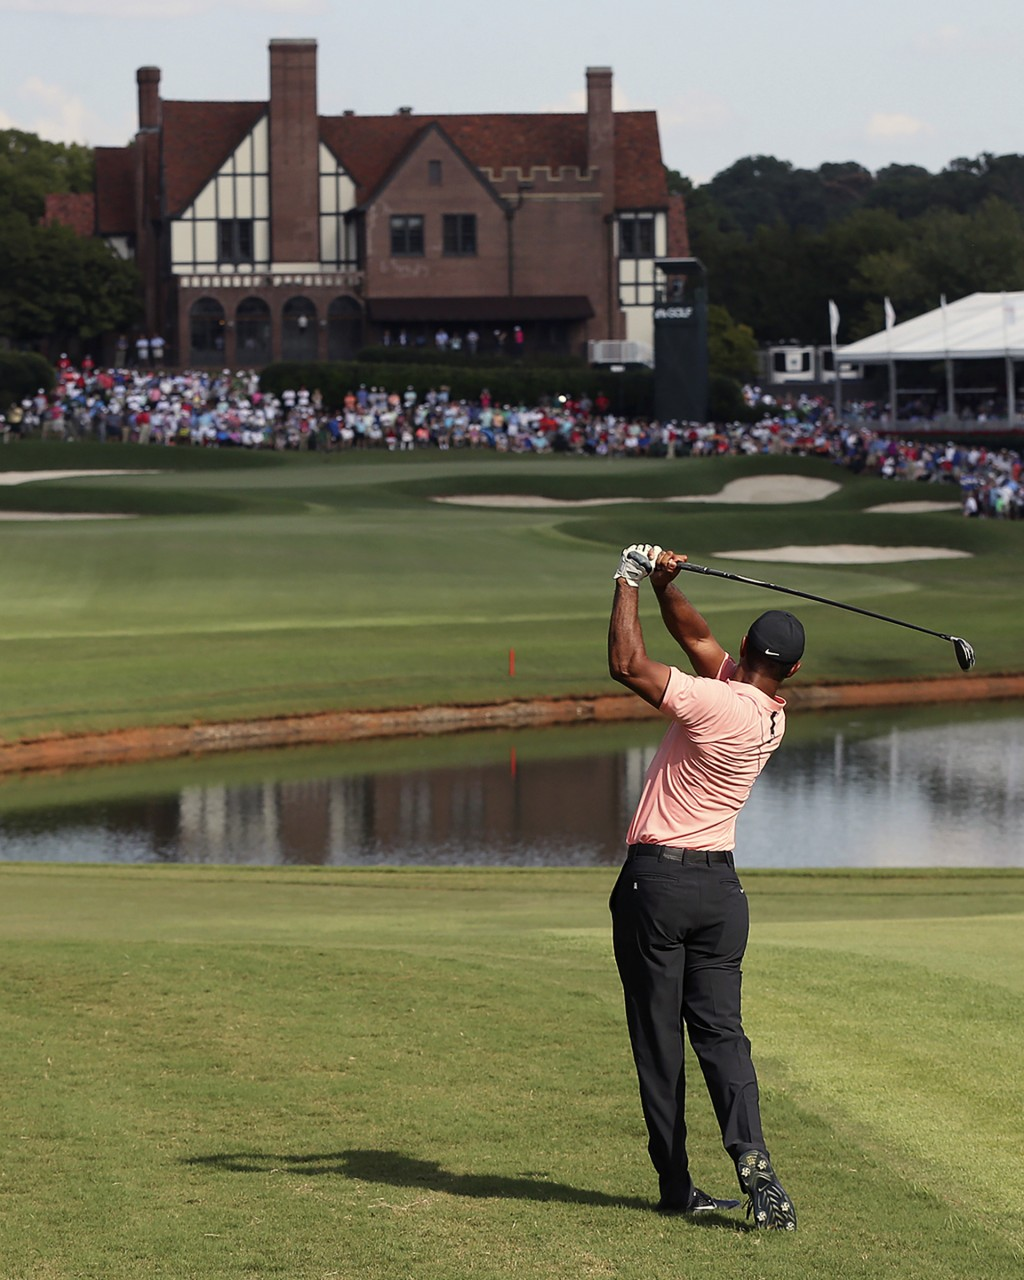 Tiger Woods hits his fairway shot to the 18th green during the first round of the Tour Championship golf tournament Thursday Sept. 20 2018 in Atlan